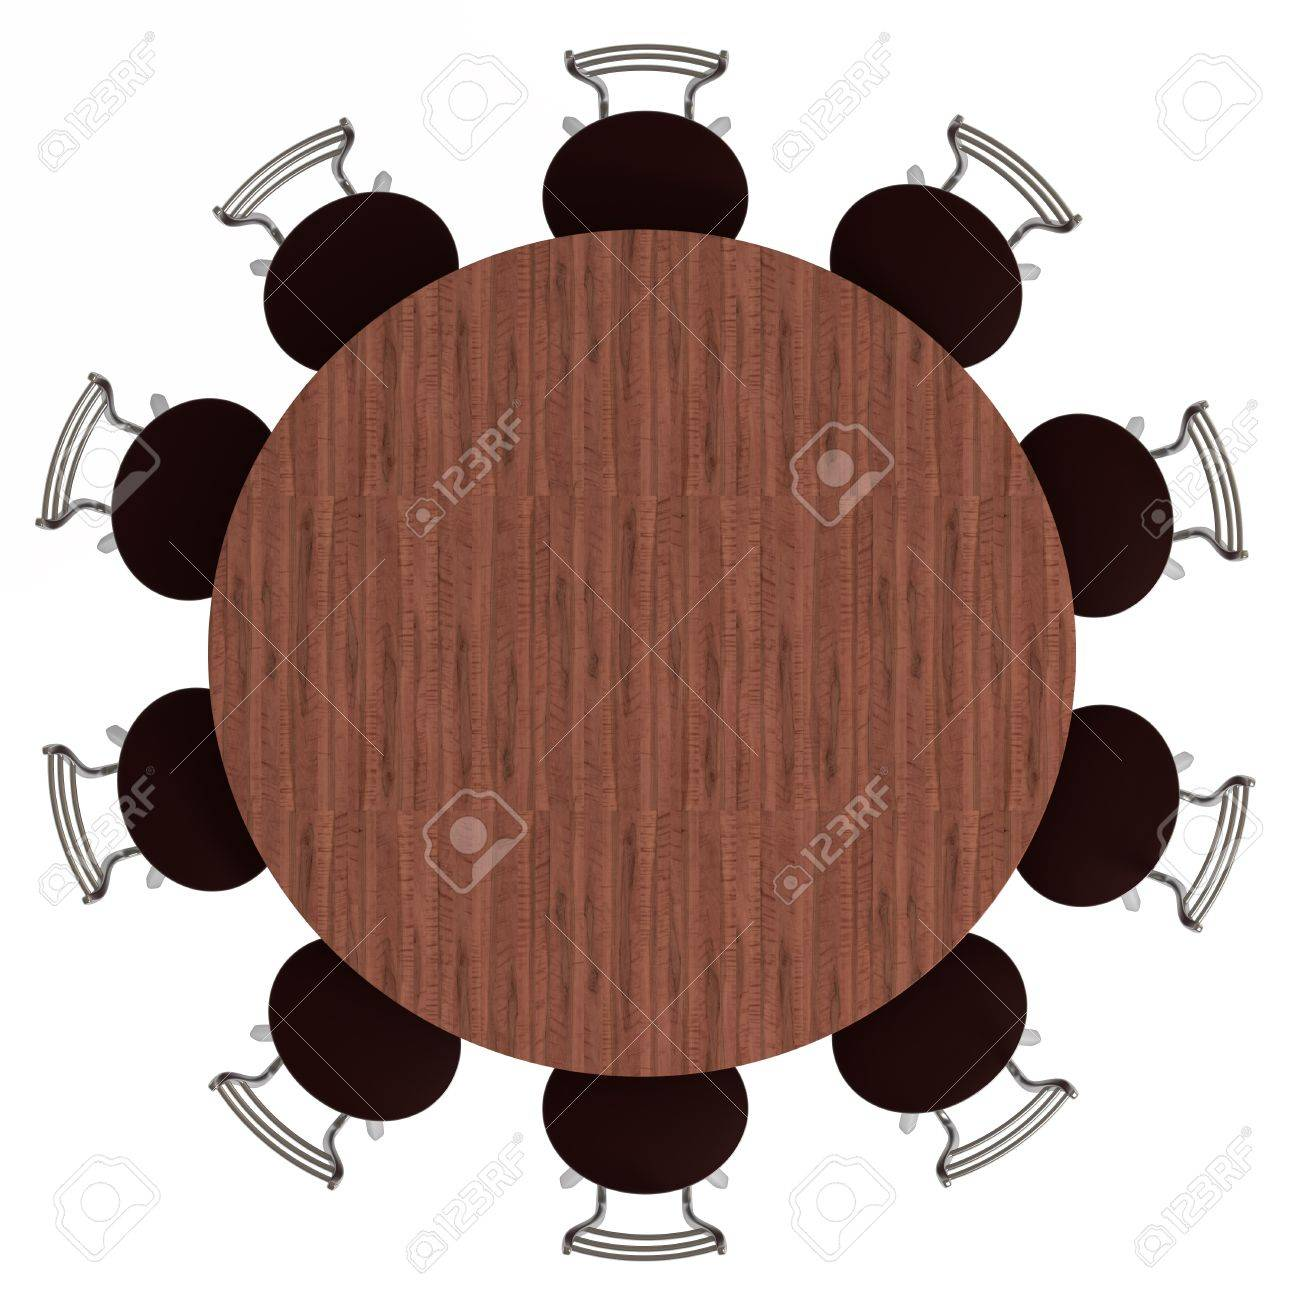 Round Table And Chairs Top View Isolated On White 3d Illustration